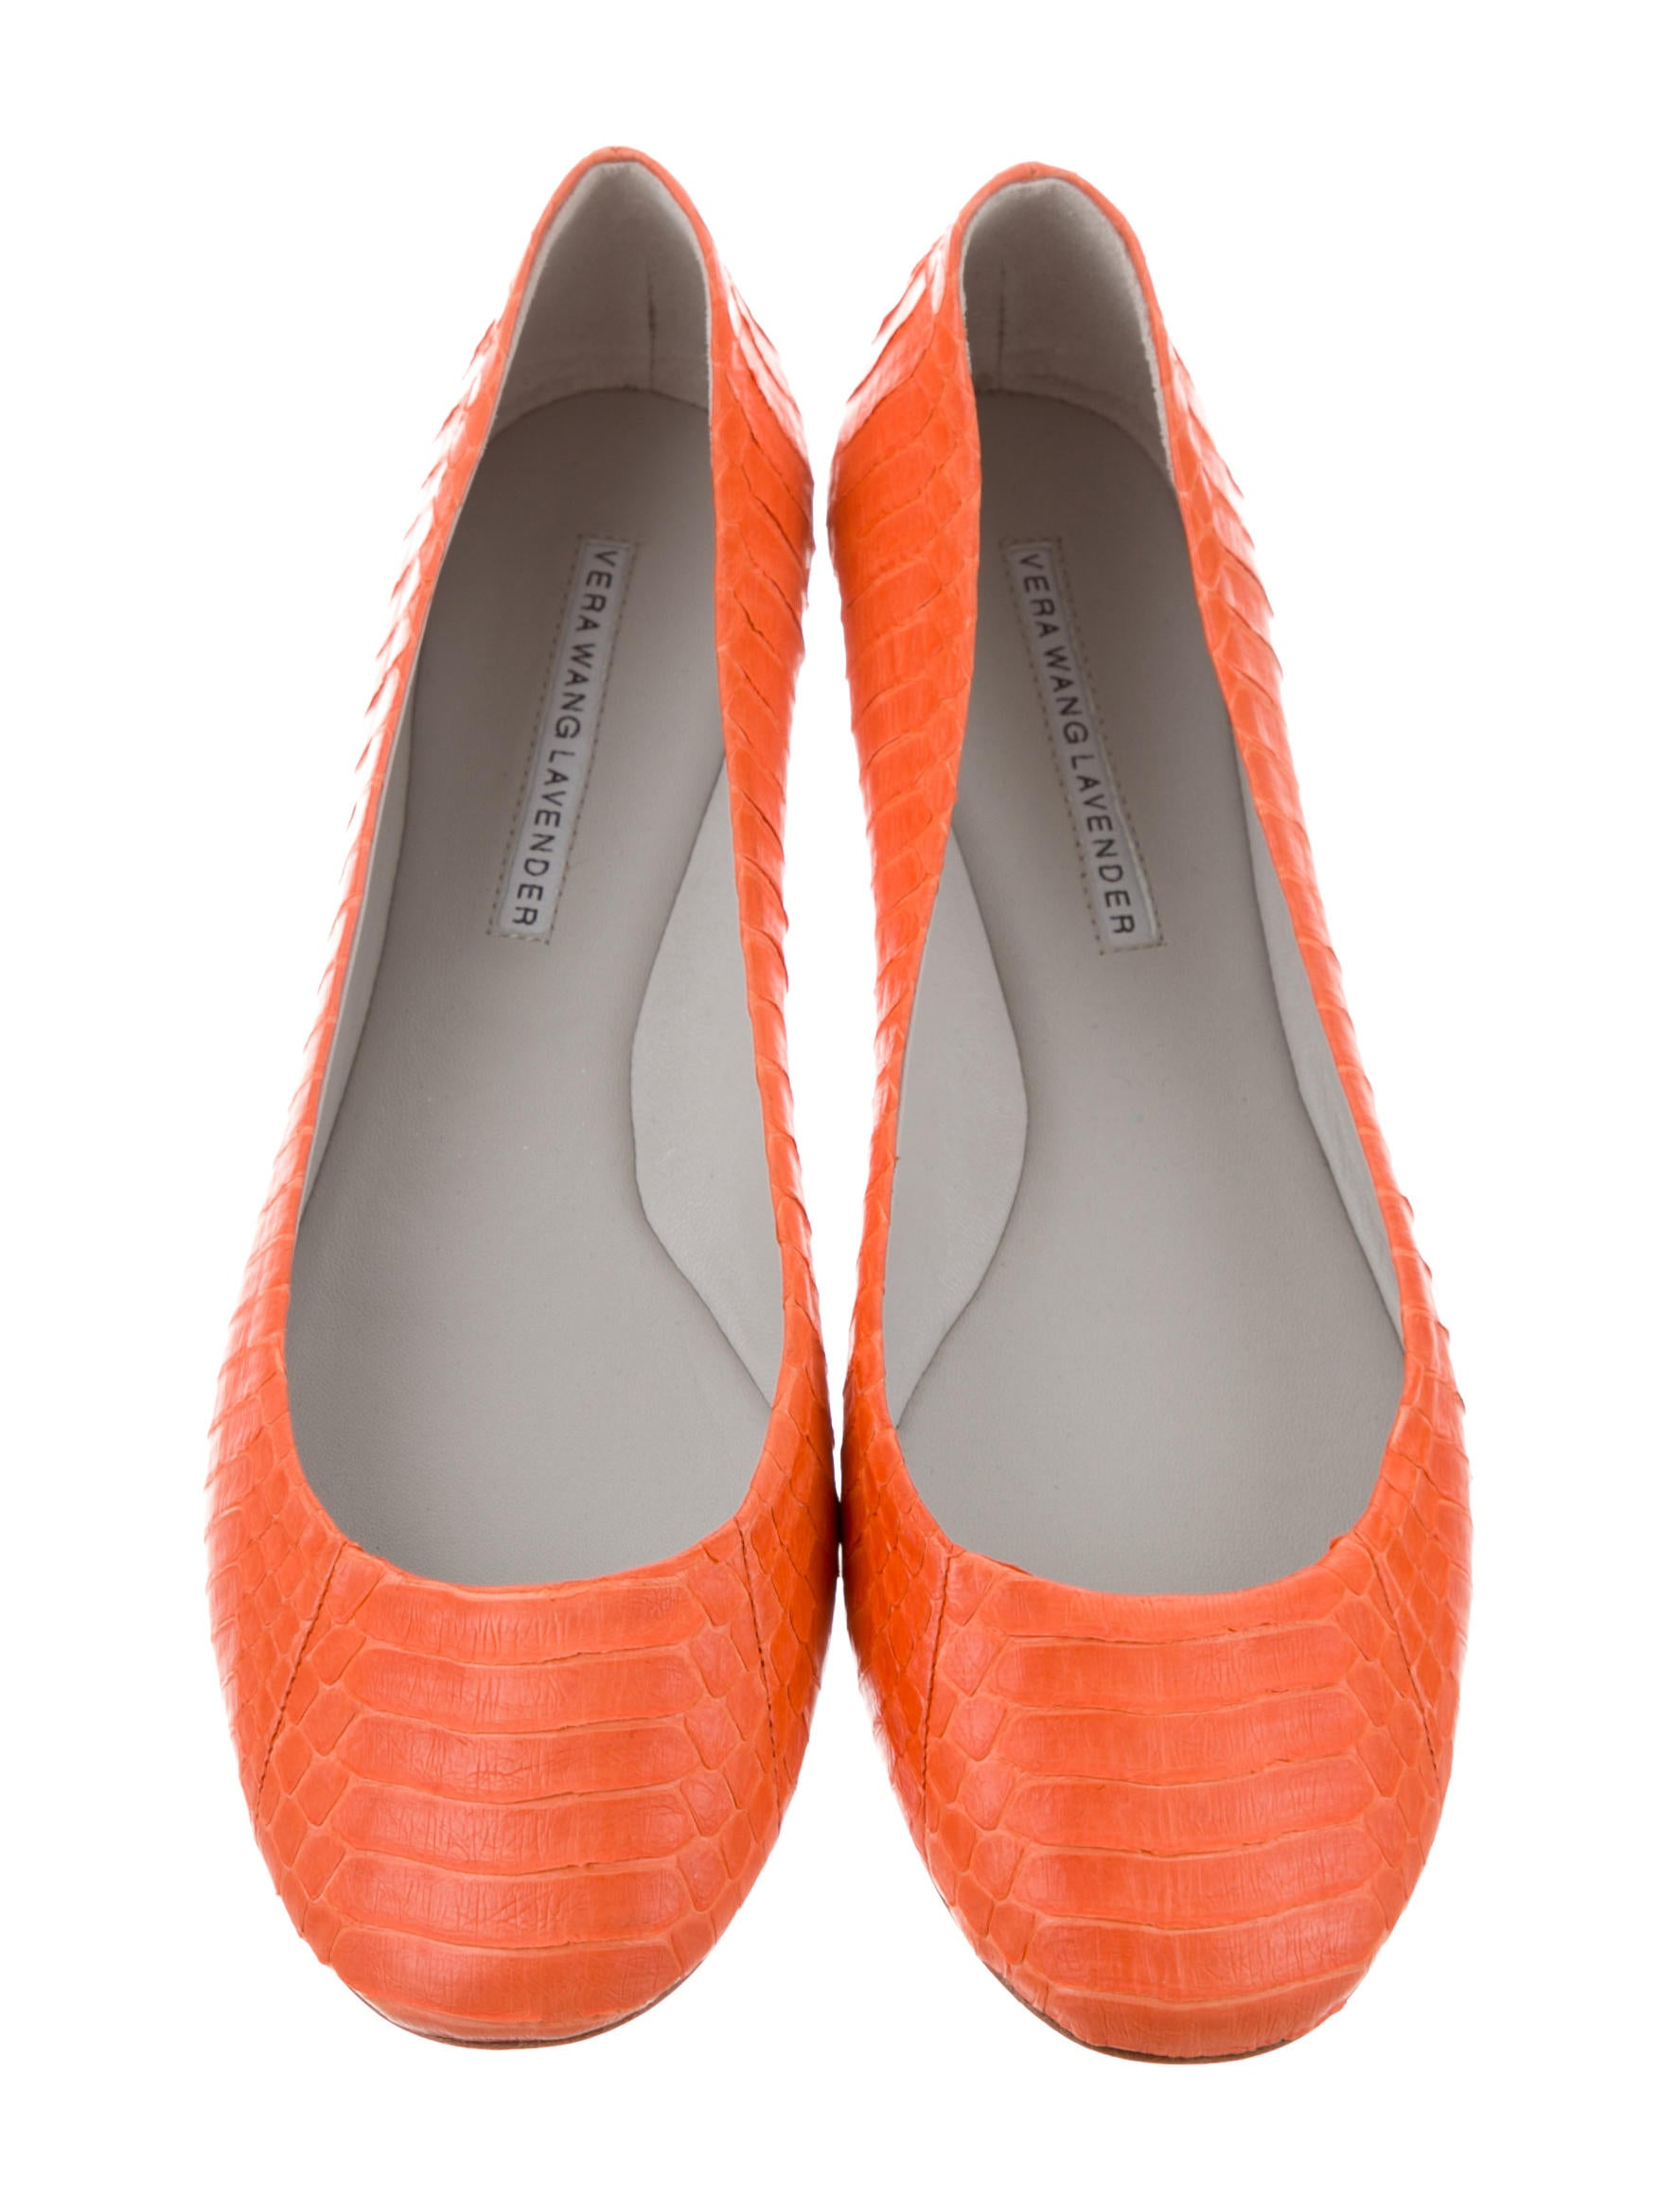 Vera Wang Lavender Label Python Round-Toe Flats w/ Tags cheapest price sale online gL2wKyl